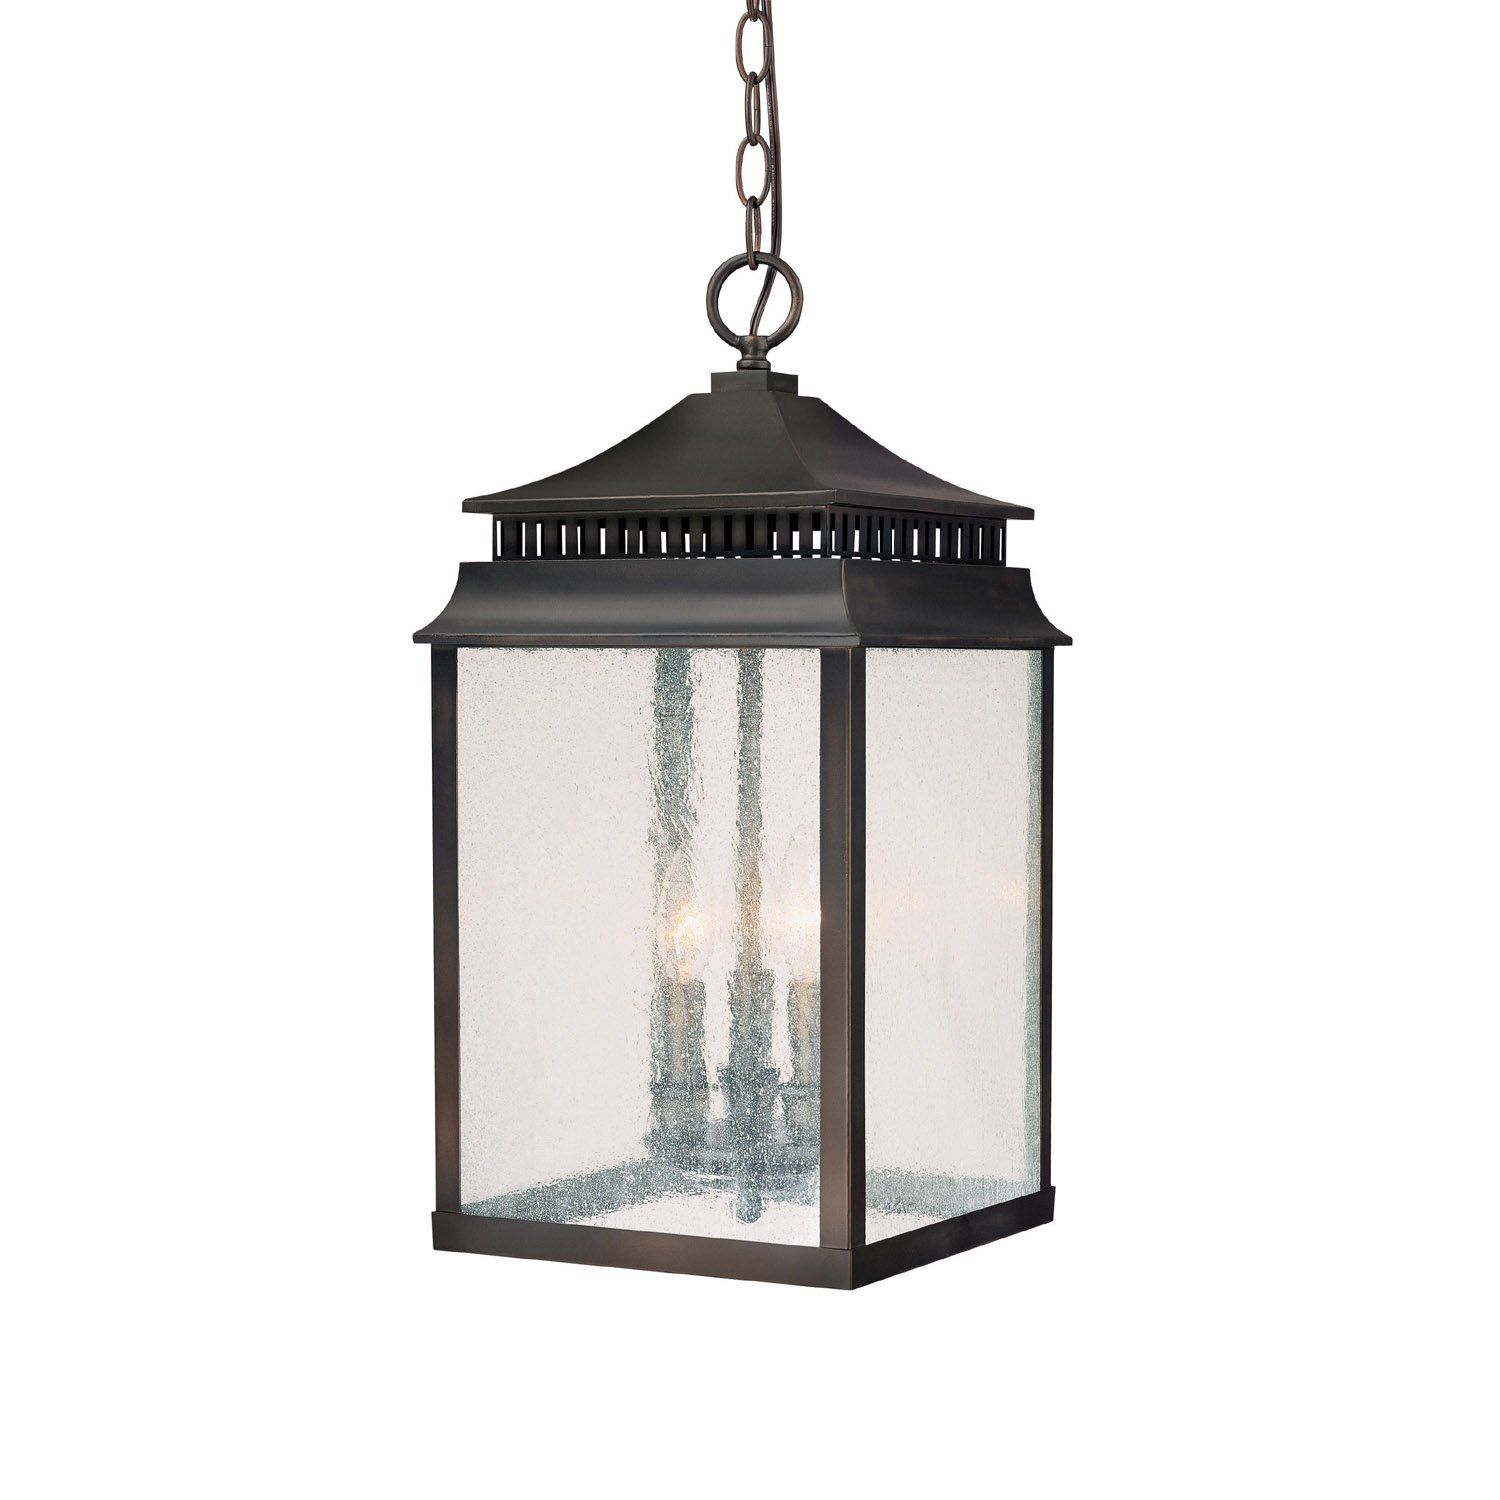 Capital Lighting 9116OB Sutter Creek 3 Light Exterior Hanging Lantern, Old  Bronze Finish With Clear Seeded Glass   Pendant Porch Lights   Amazon.com